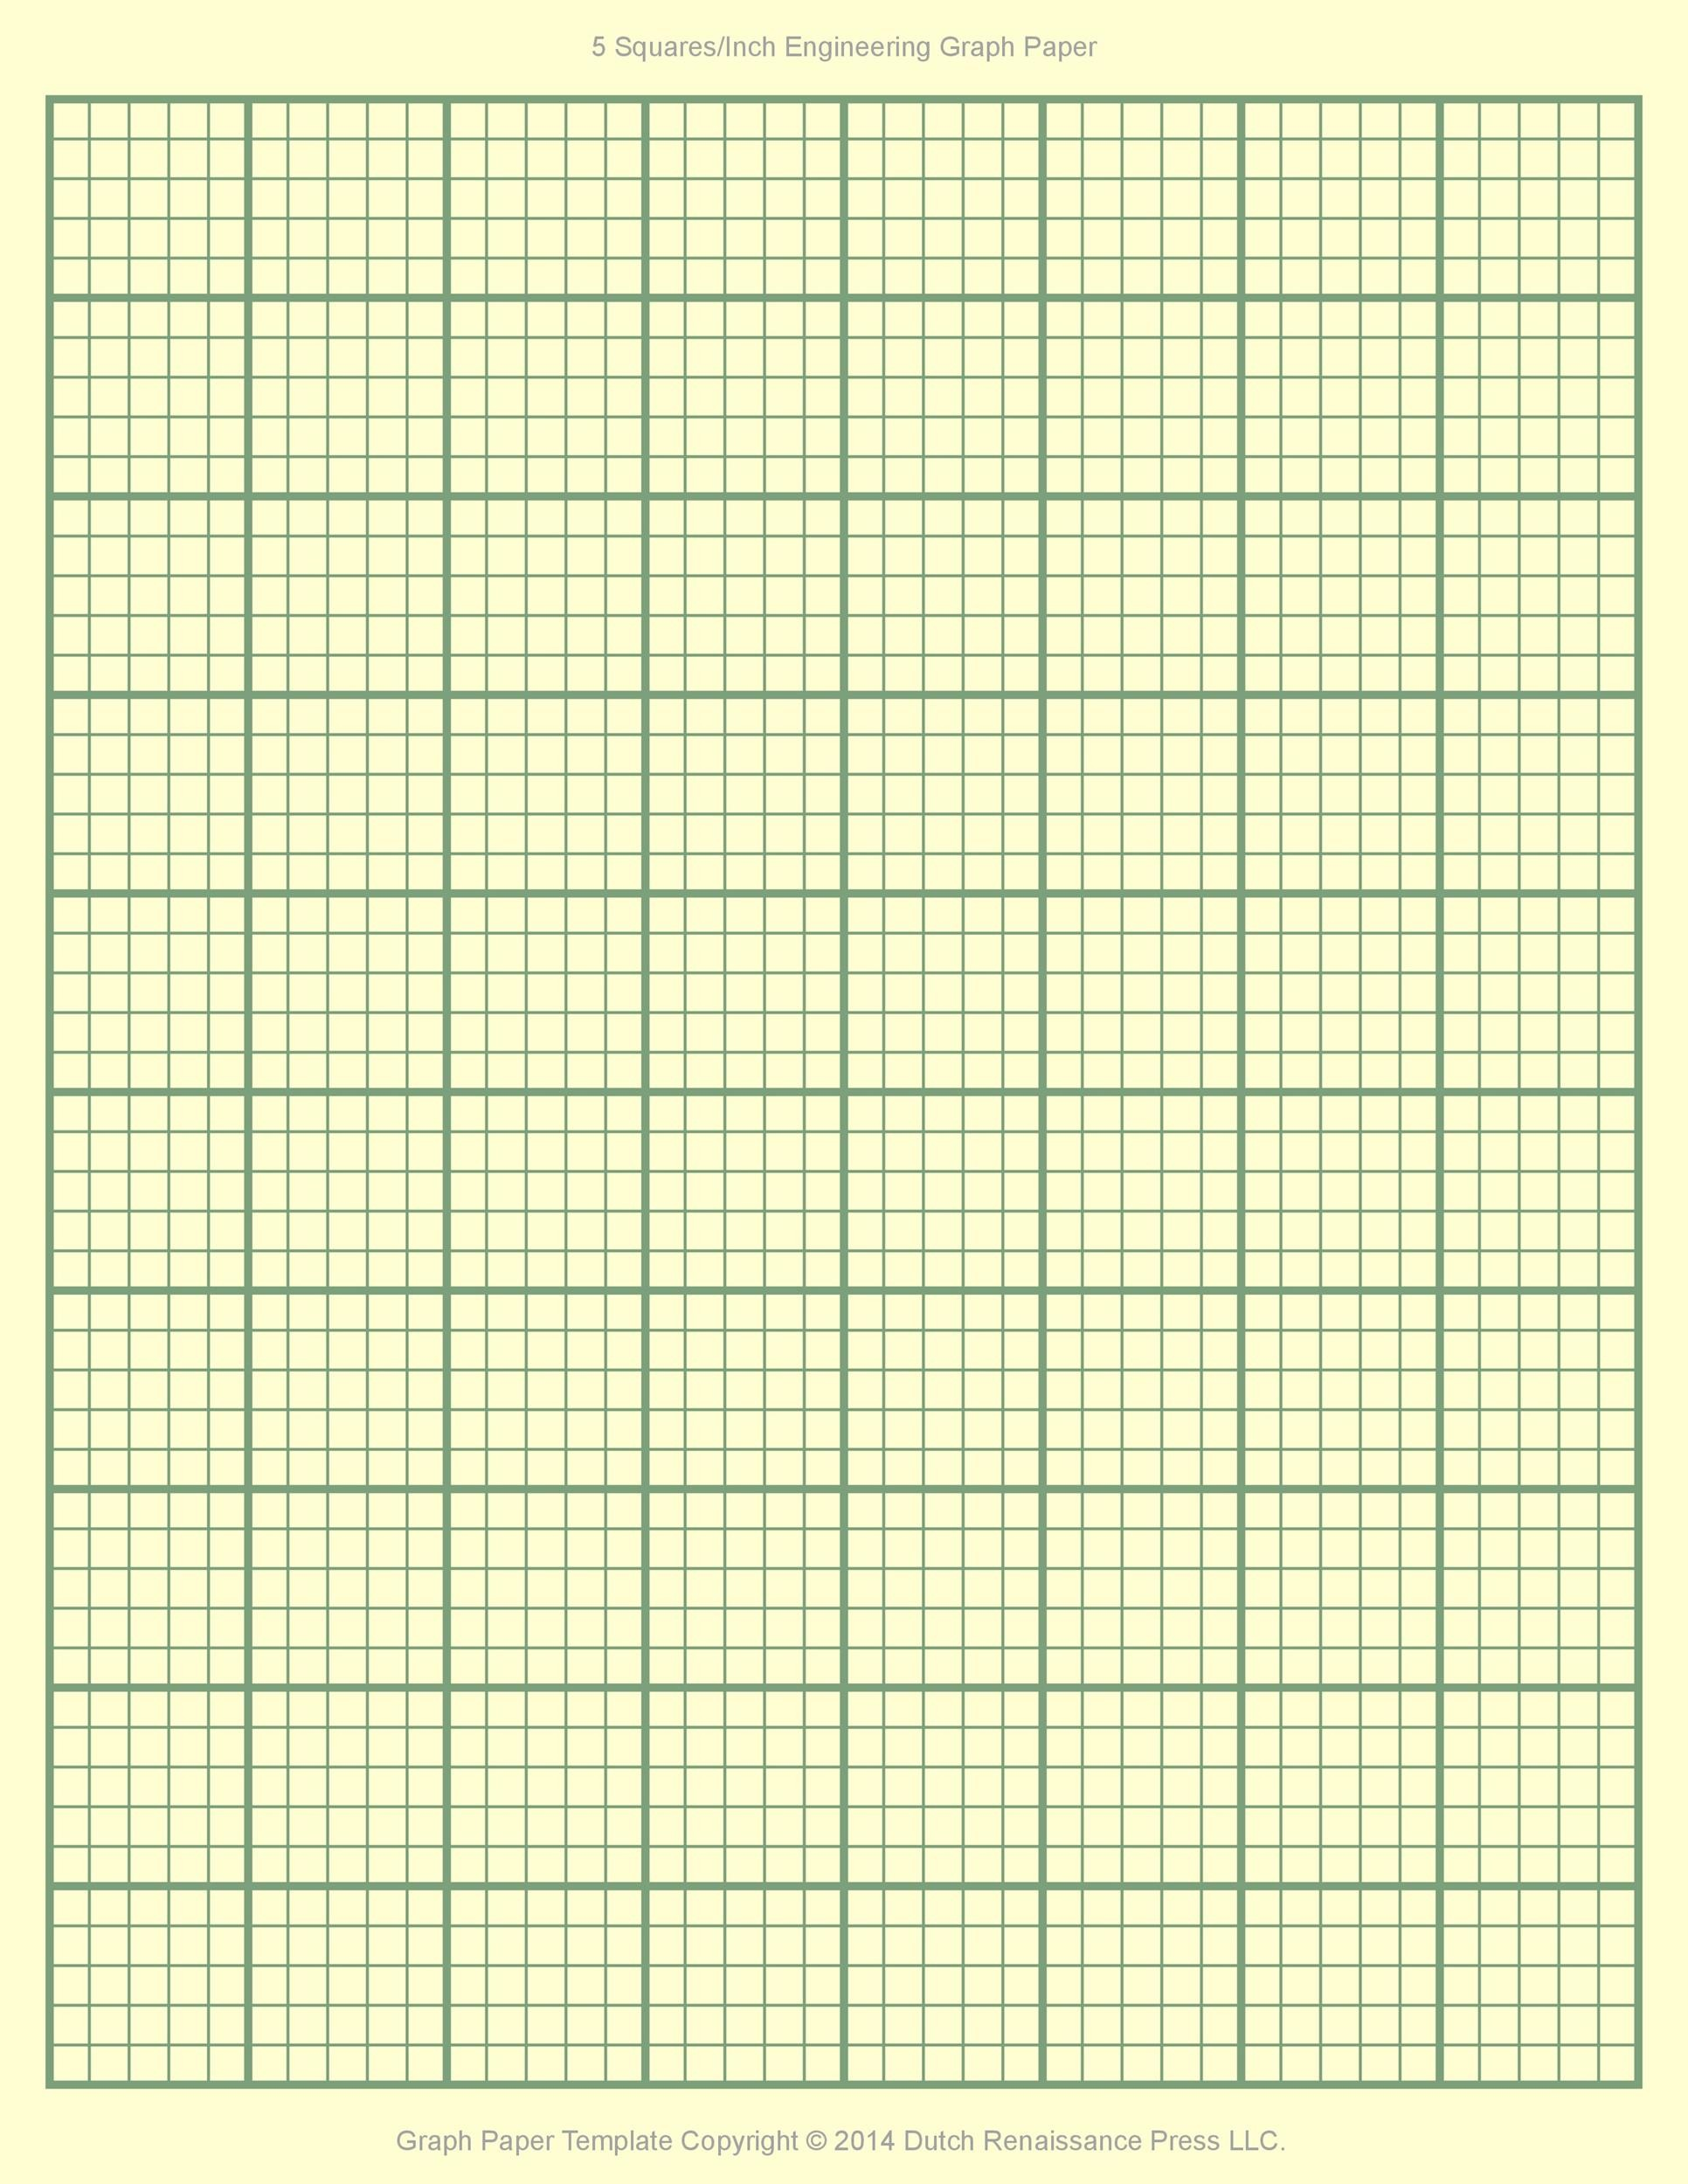 graph sheet download – How to Print Graph Paper in Word